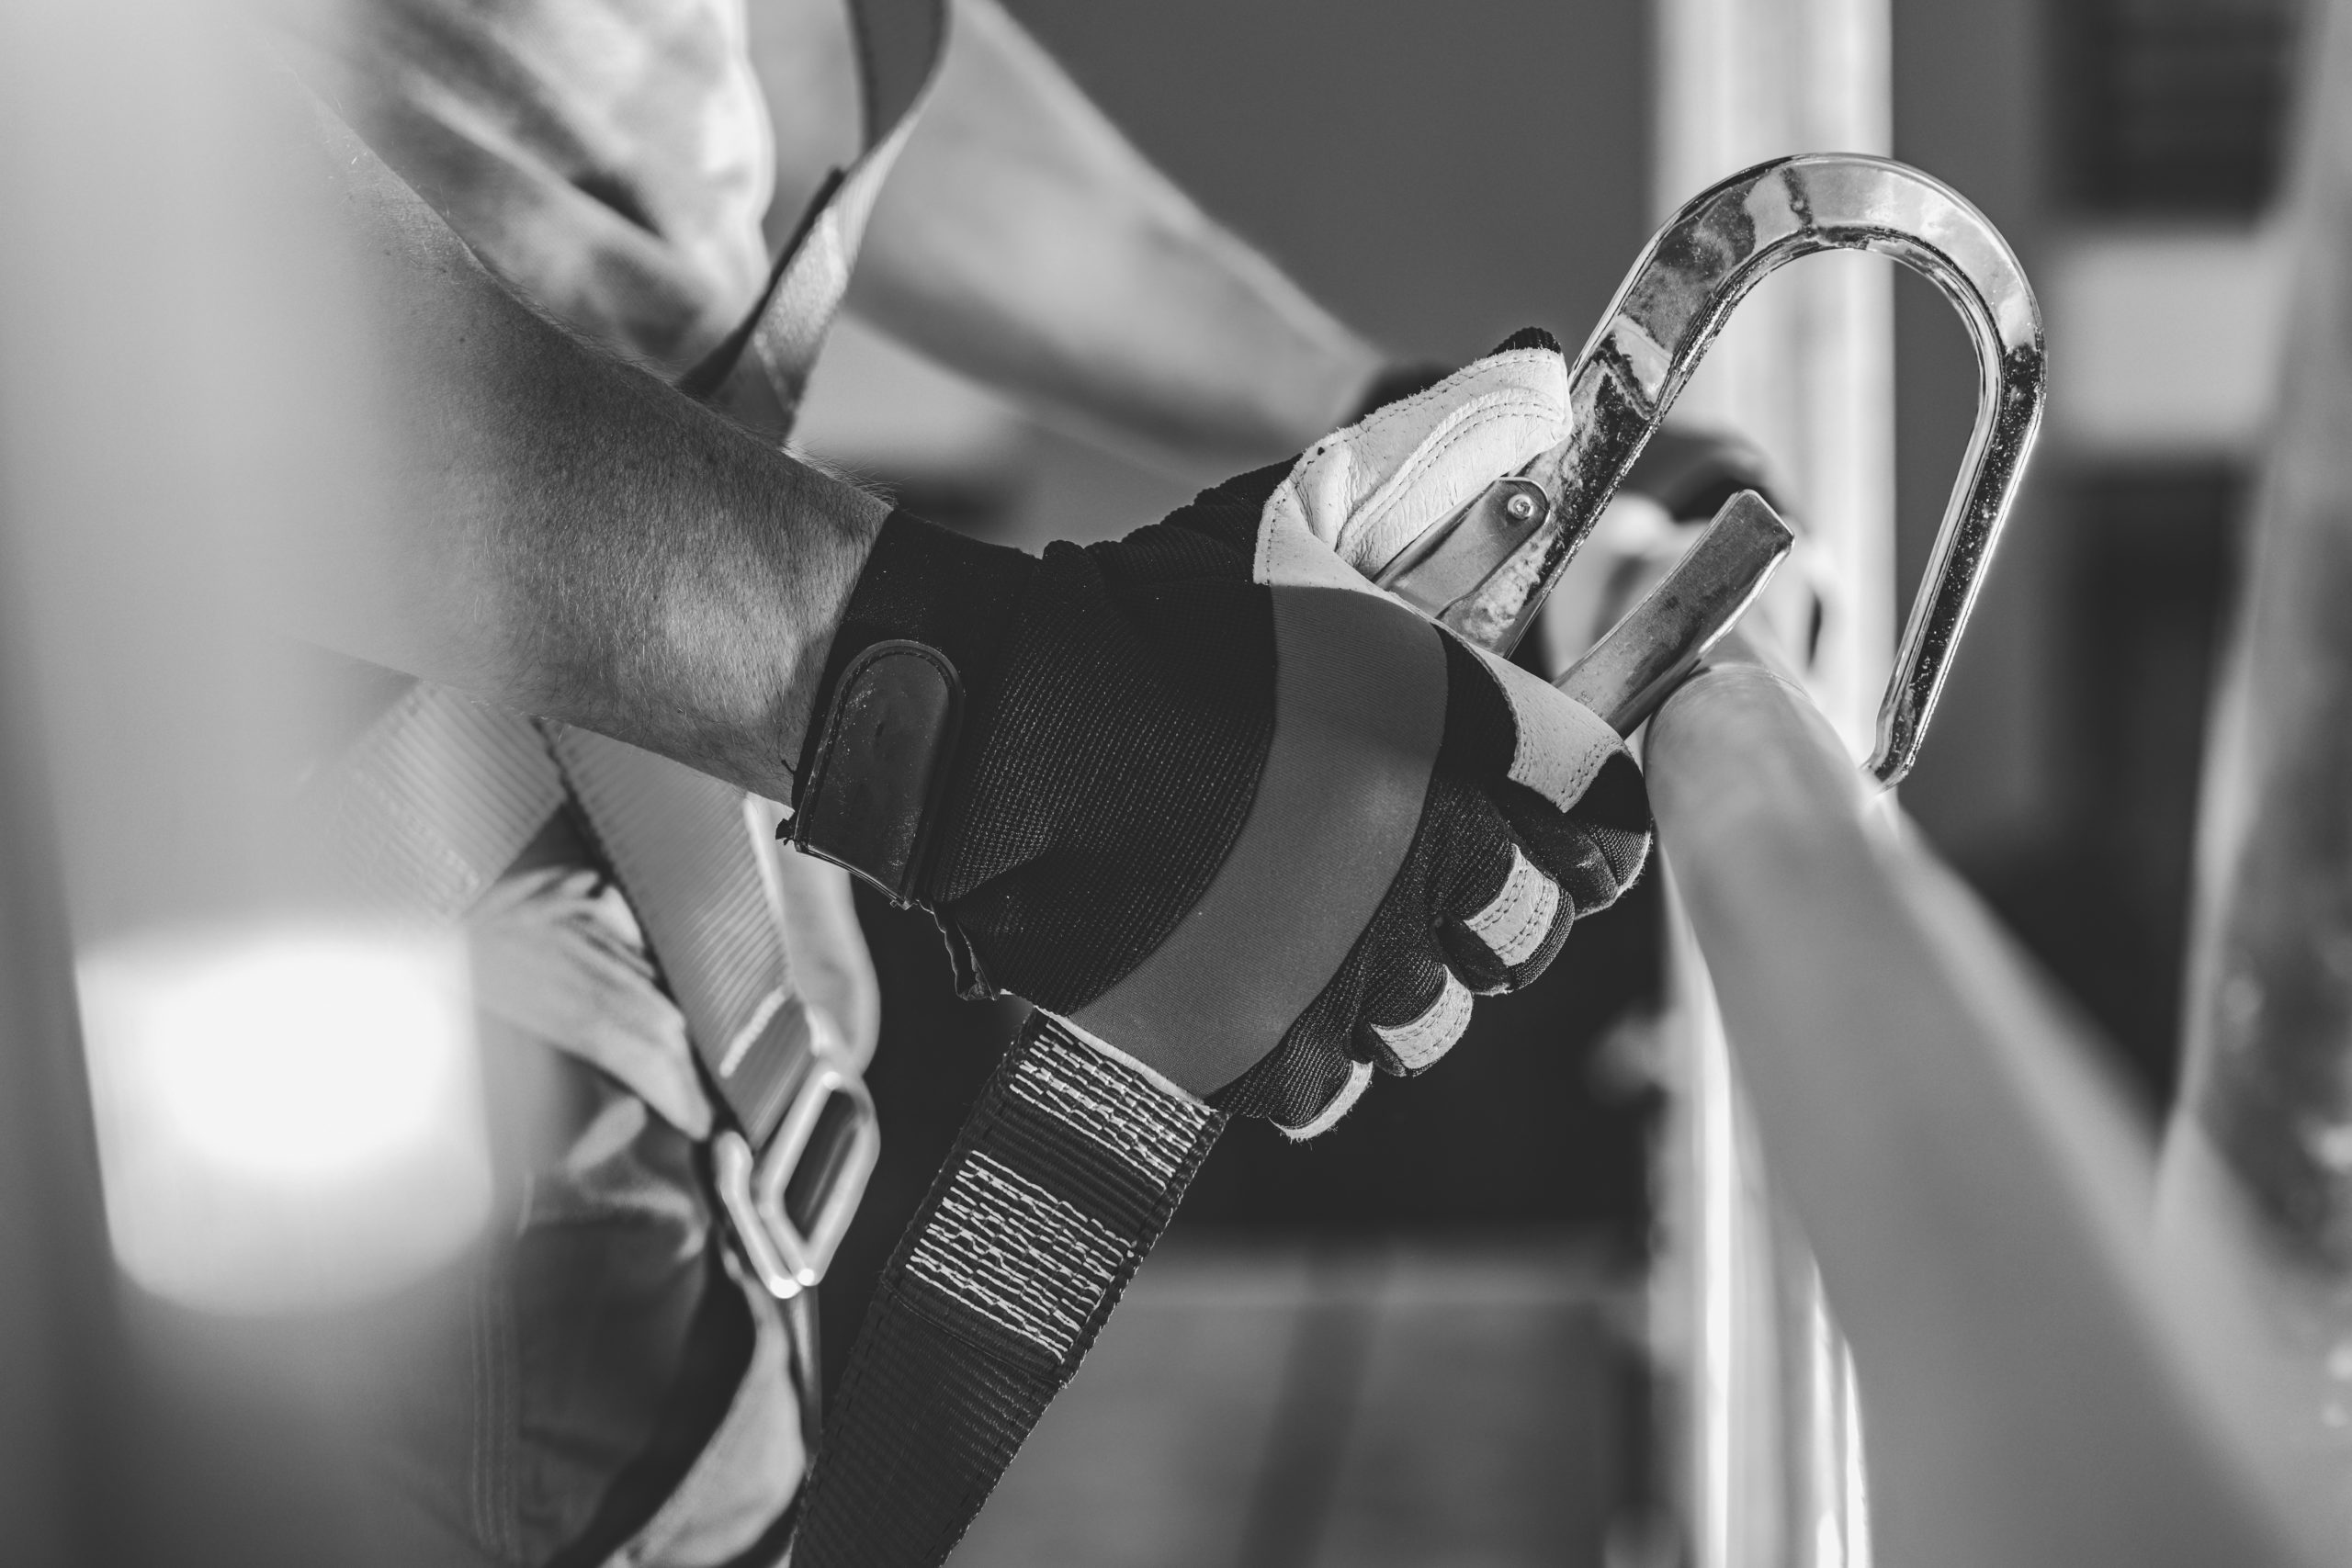 Safety Harness Hook Attaching to Scaffolding by Construction Worker.